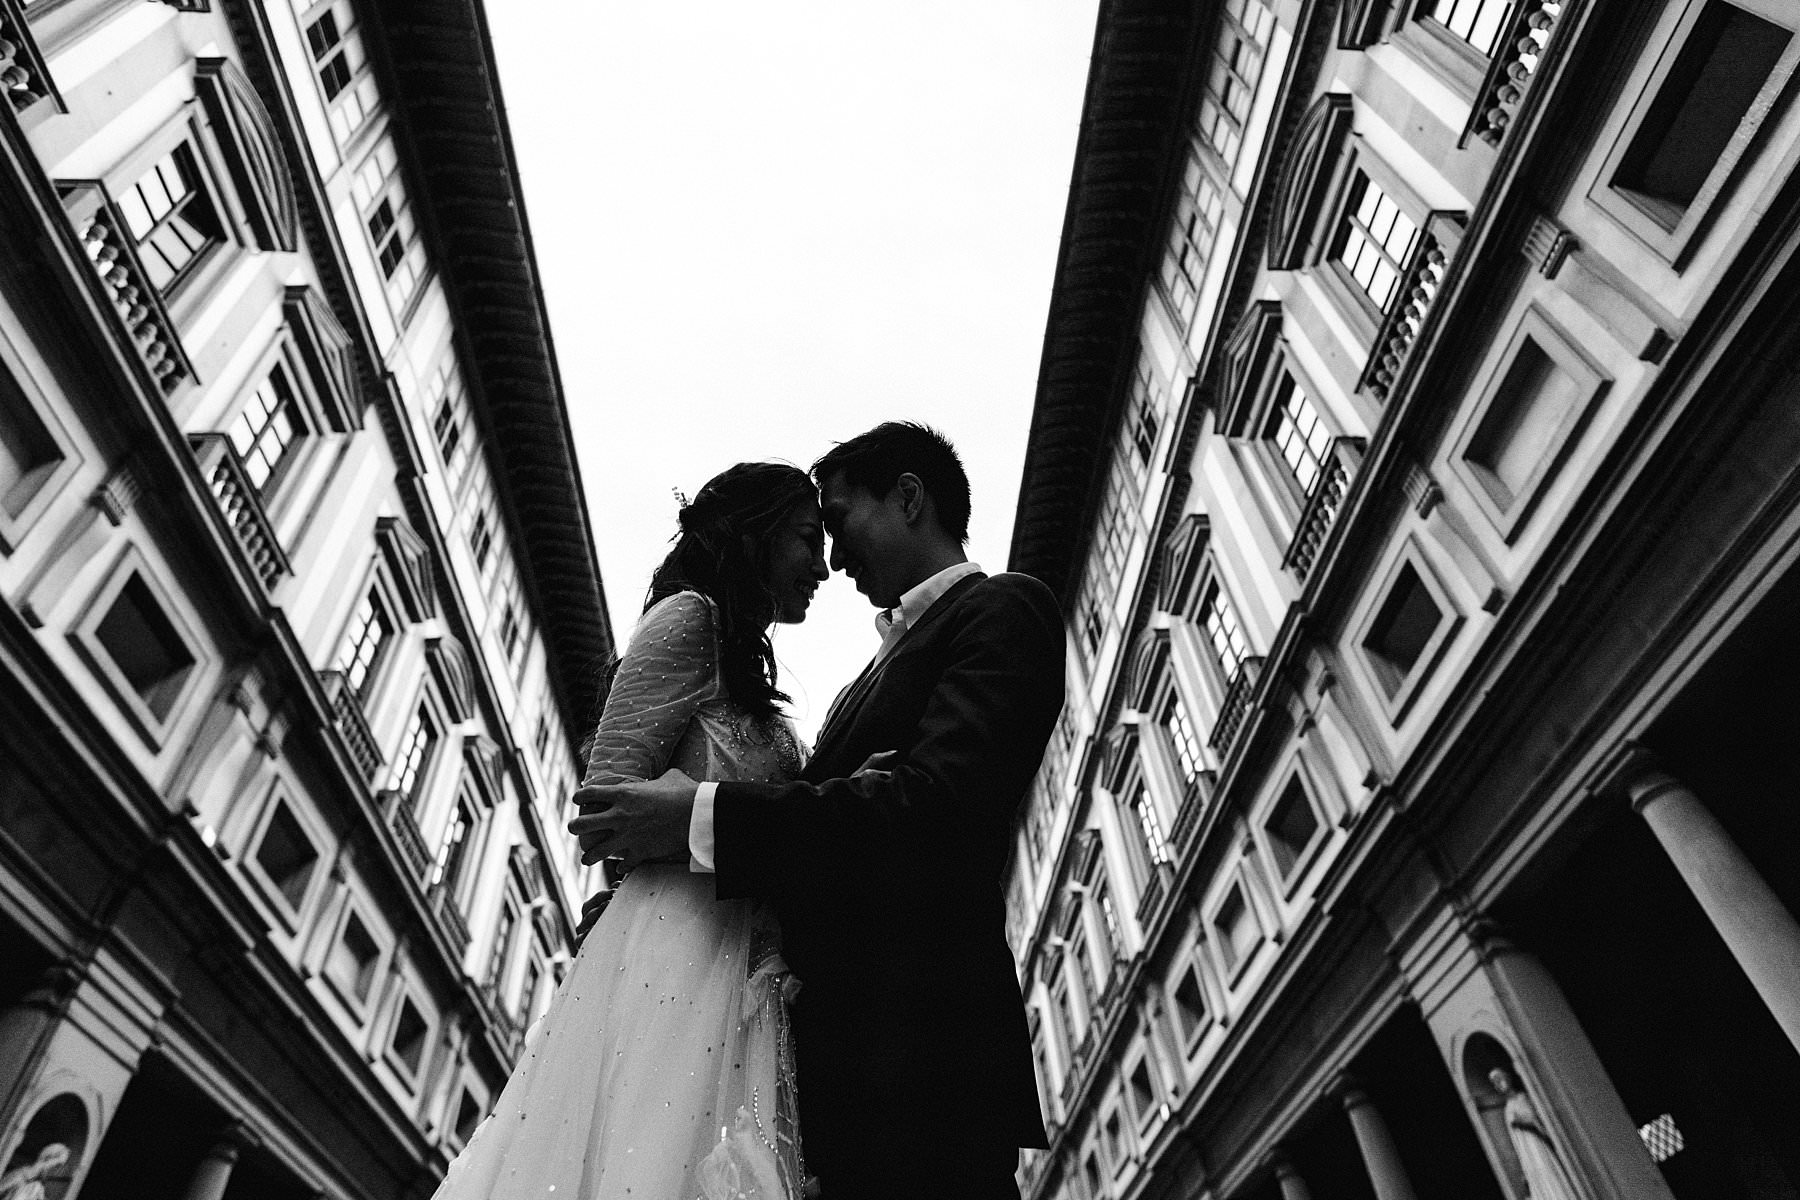 Uffizi Art Gallery is a must go place to get a couple photo during your Florence trip. This elegant couple from Hong Kong turn the visit of Florence into their honeymoon photo shoot